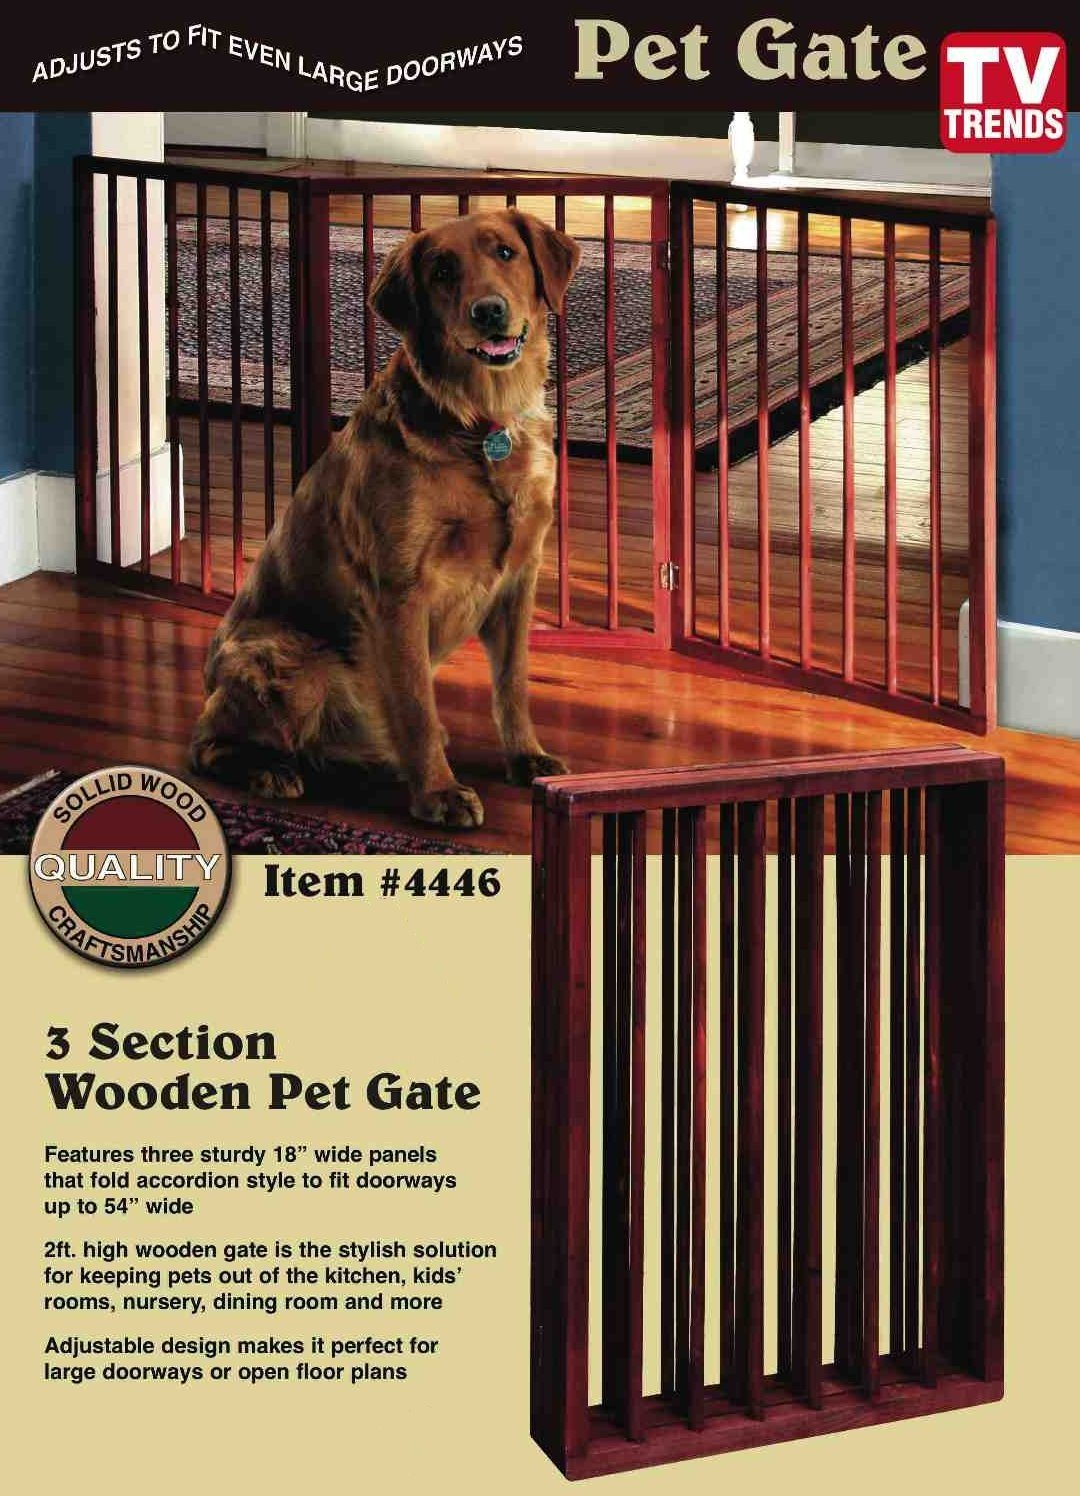 Amazon.com : Folding Wood Pet Gate- 3 Sections : Indoor Safety ...